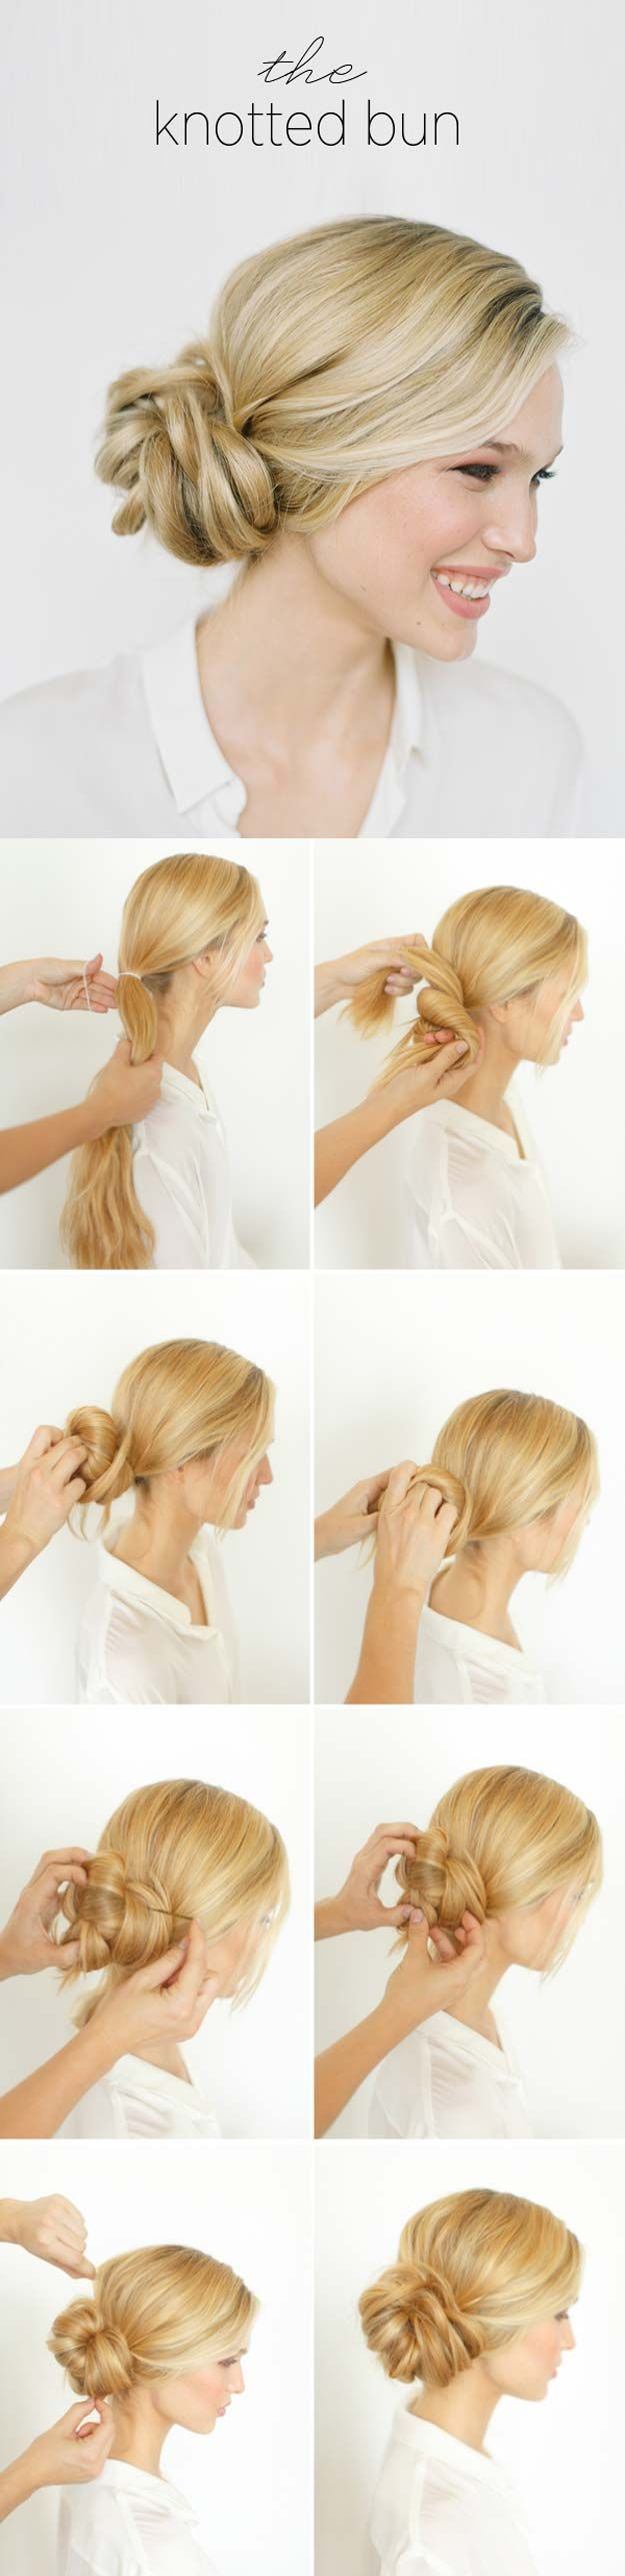 Best Hairstyles For Your 30s -DIY Knotted Bun- Hair Dos And Don'ts For Your 30...